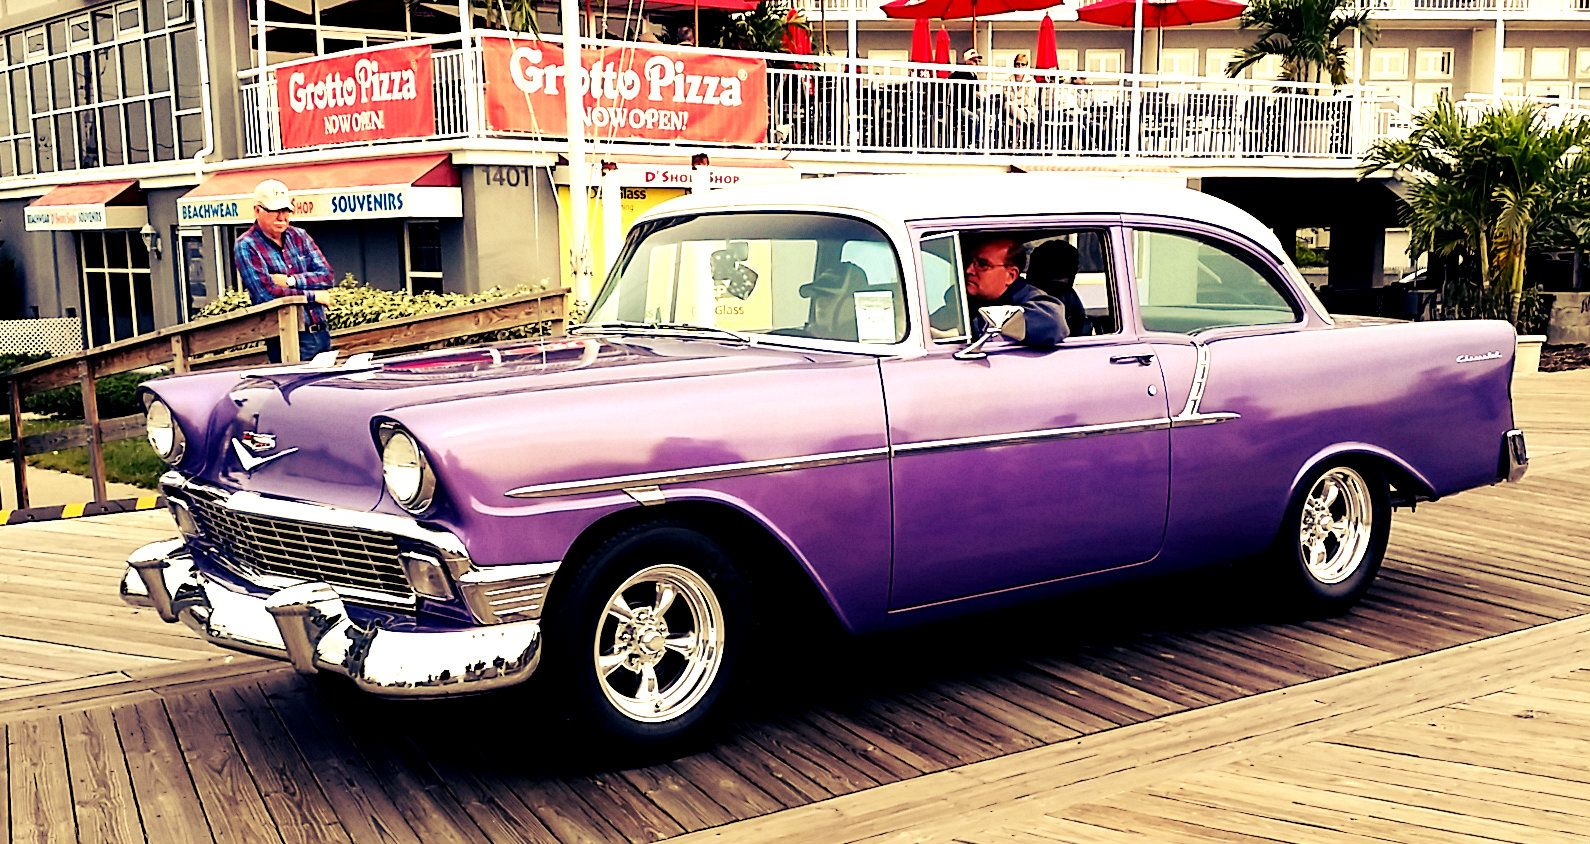 Boardwalk parade Friday 5/15/15 in Ocean City, MD | Classic Cars ...